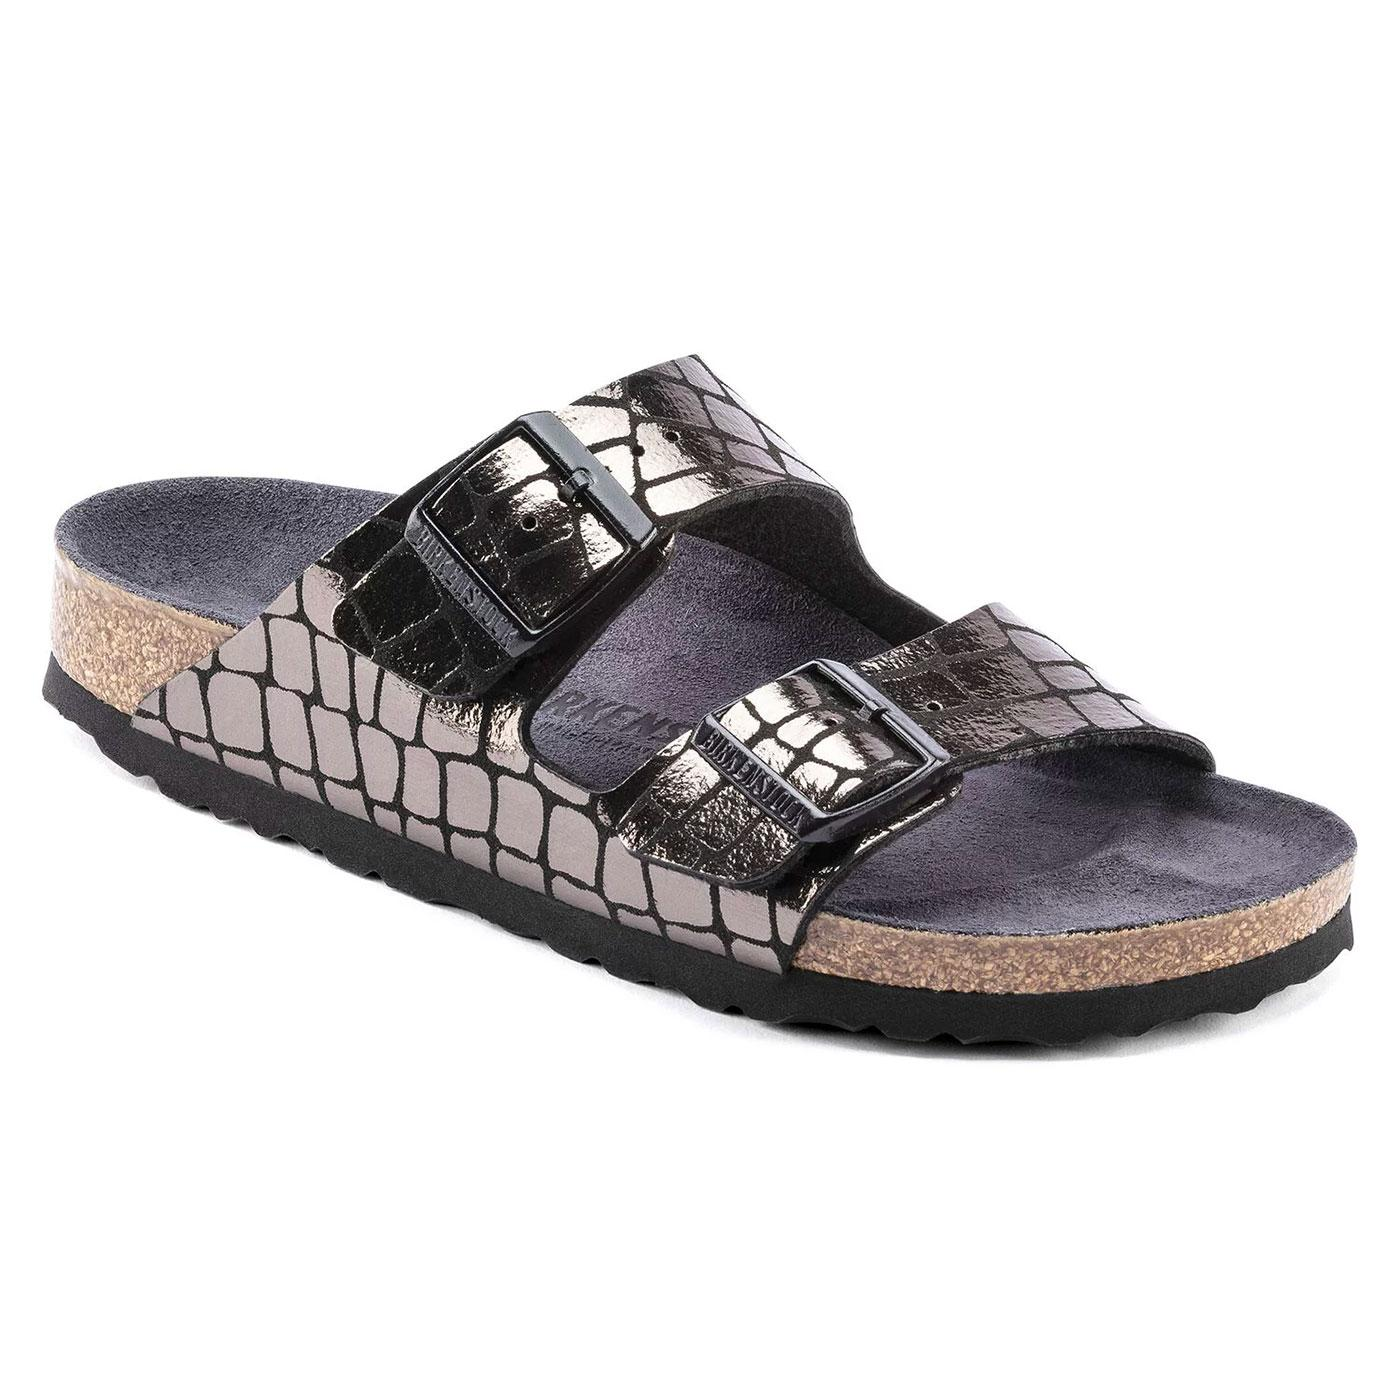 Arizona MF BIRKENSTOCK Women's Gator Gleam Sandals